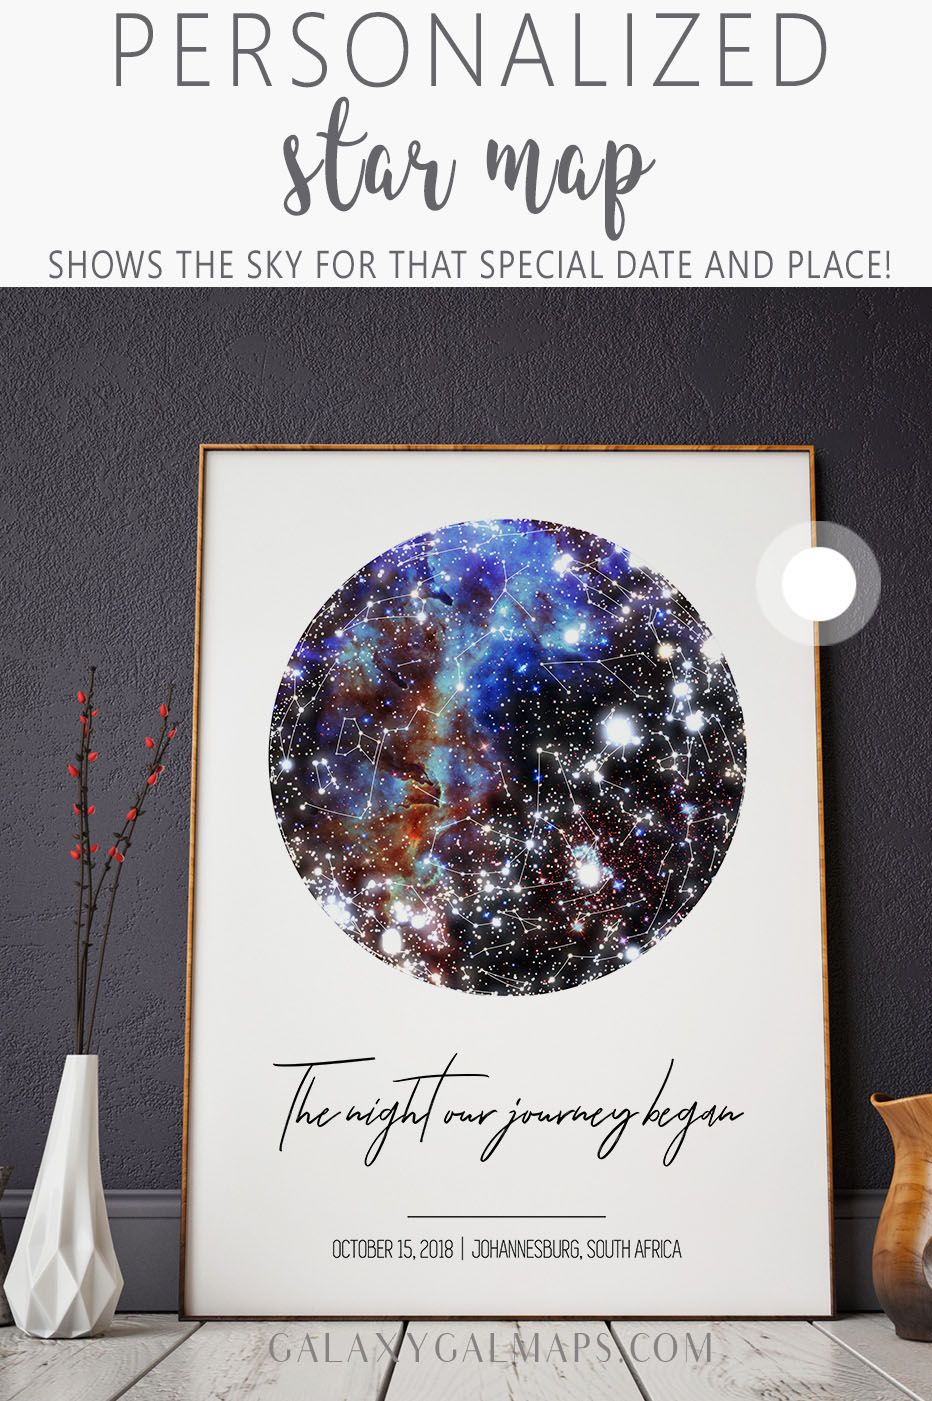 Unique Star Chart By Date 0 Rustic Guest Book Christmas Gift Downloadable Print Planetarium Gif Book Christmas Gift Star Map Boyfriend Anniversary Gifts